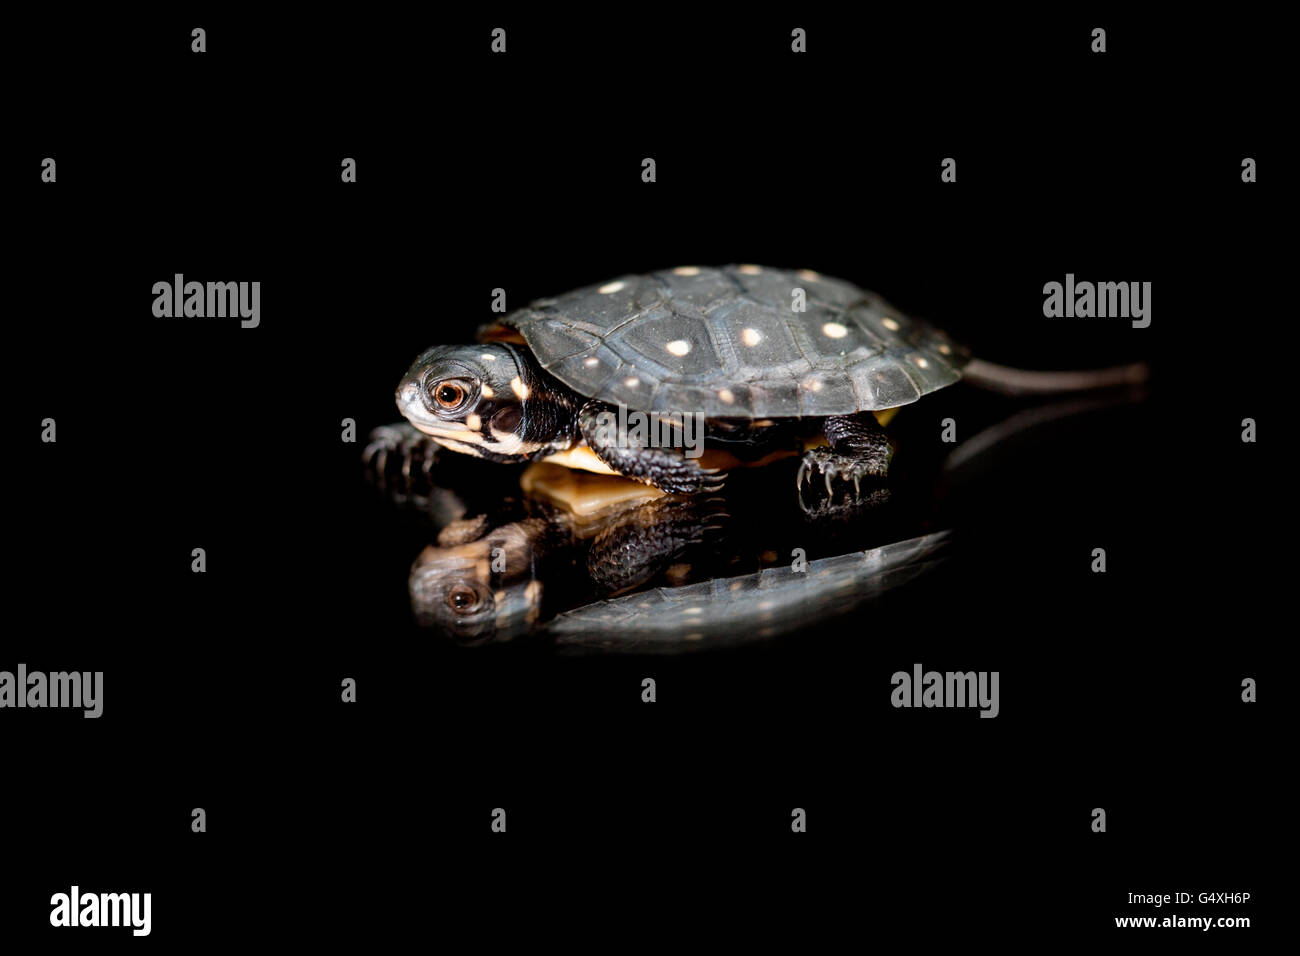 Baby Spotted Turtle (Clemmys guttata) [Captive] - Brownsville, Texas, USA Stock Photo